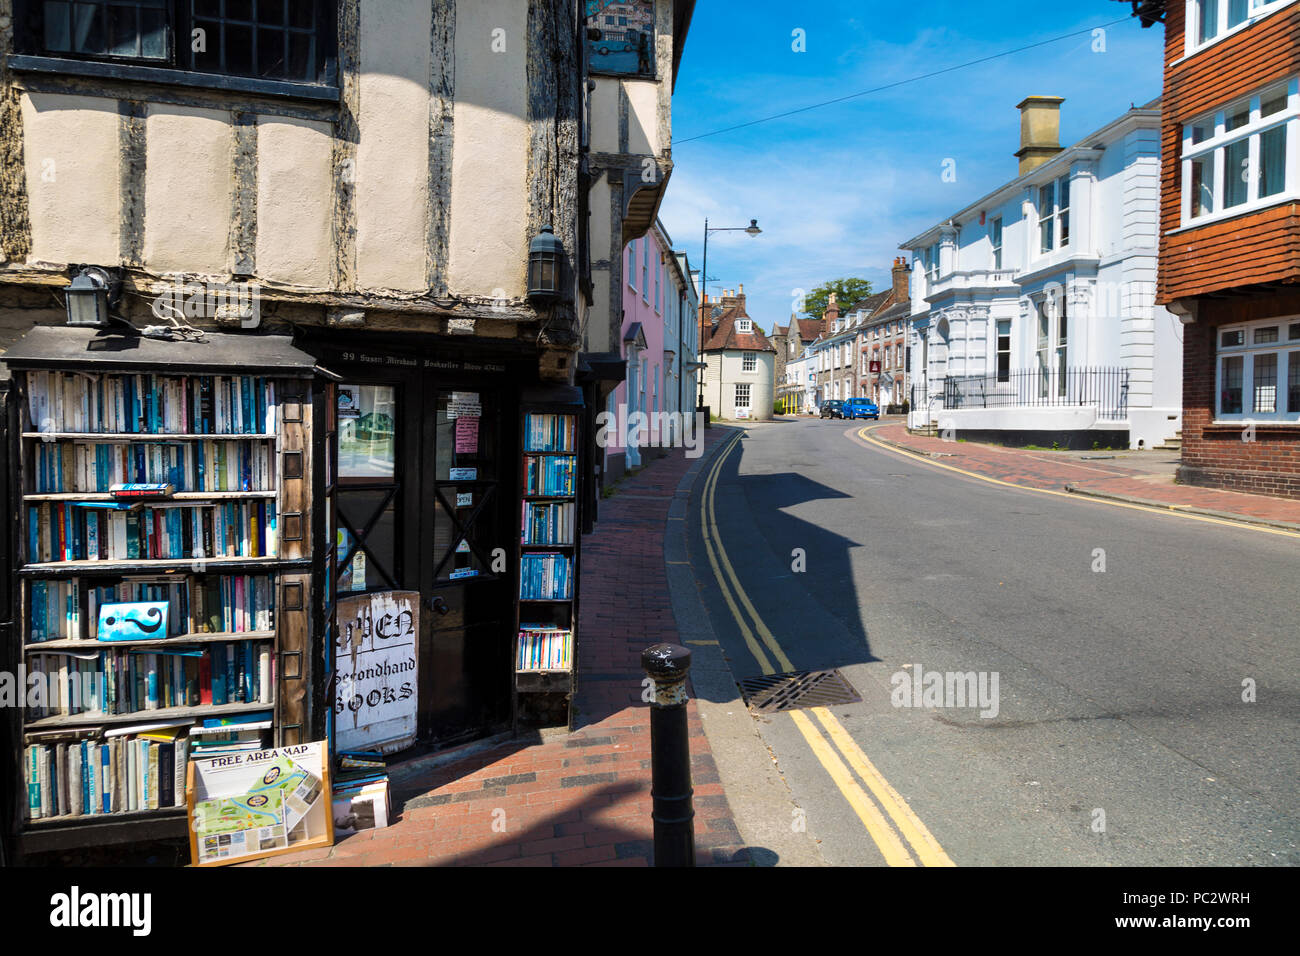 Fifteenth Century Bookshop, a traditional English town, a street in Lewes, UK - Stock Image